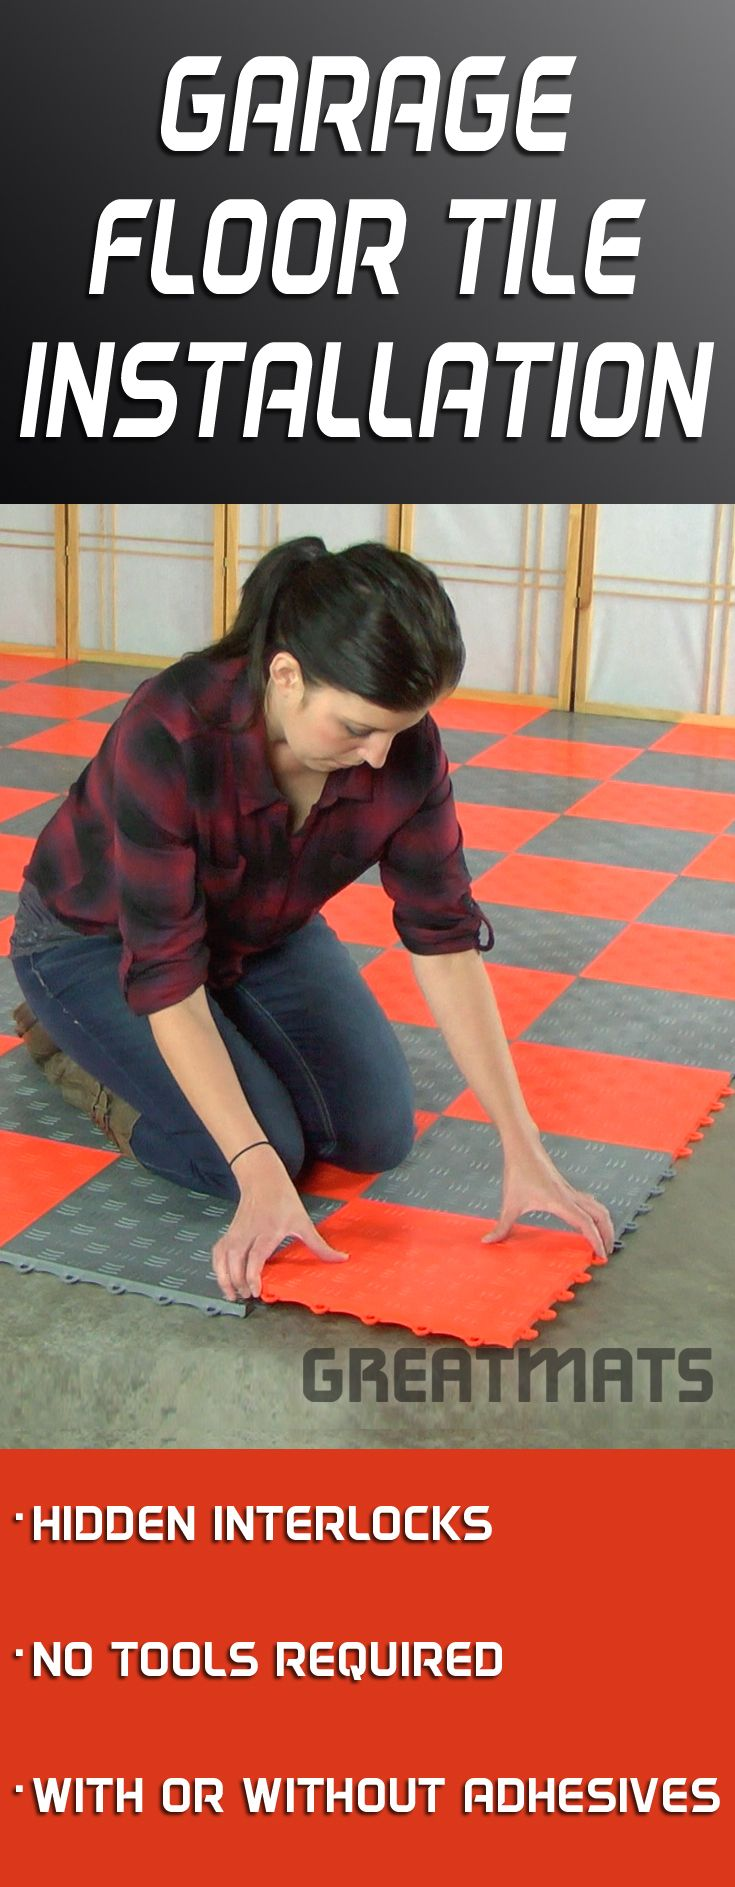 Greatmats Garage Floor Tiles Are The Best And Easiest Way To Add A